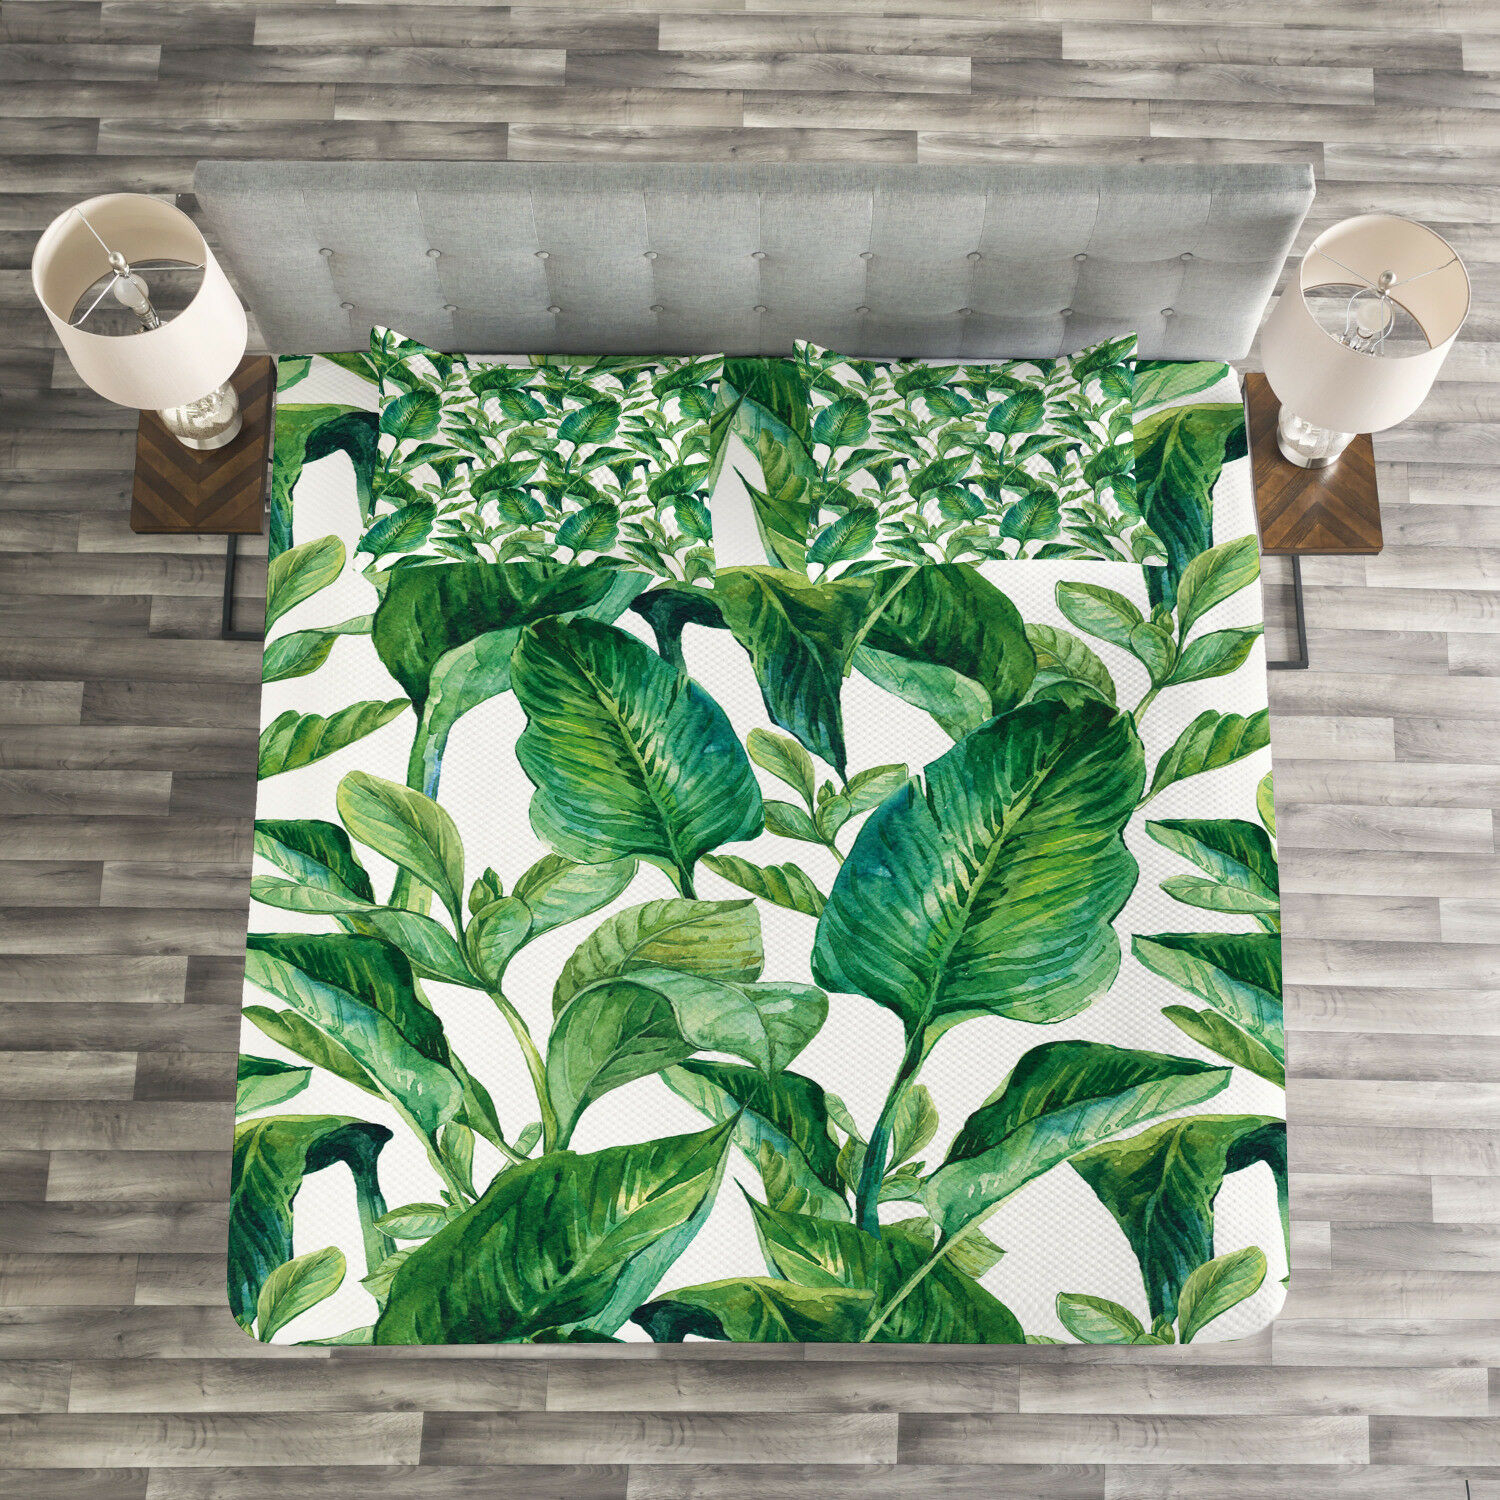 Plant Quilted Bedspread & Pillow Shams Set, Equatorial Leaves Print